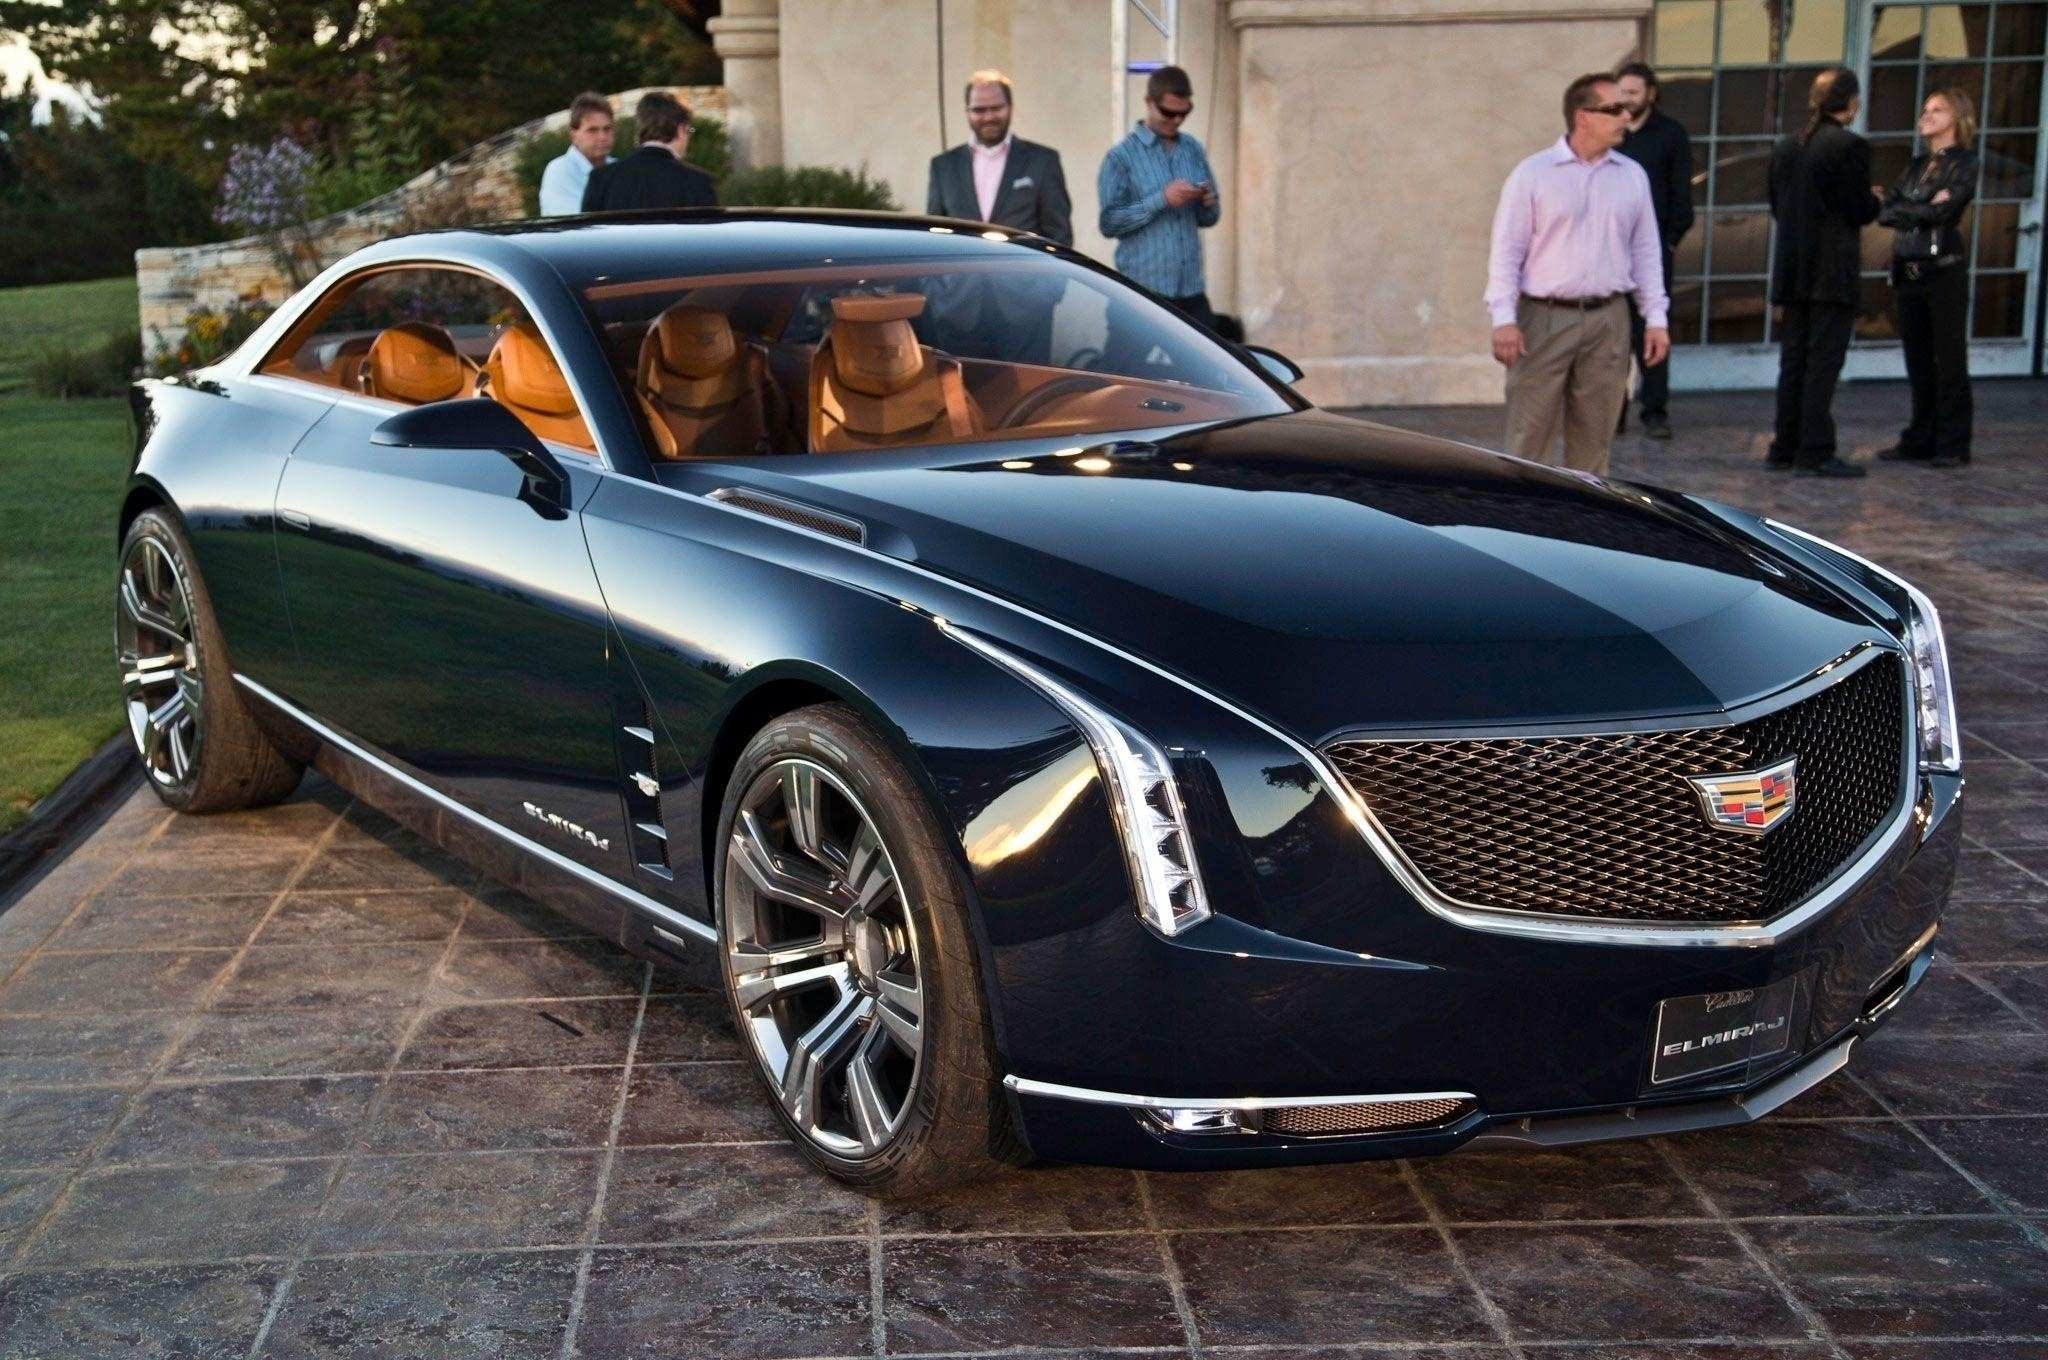 93 New 2019 Cadillac Deville Release Date by 2019 Cadillac Deville